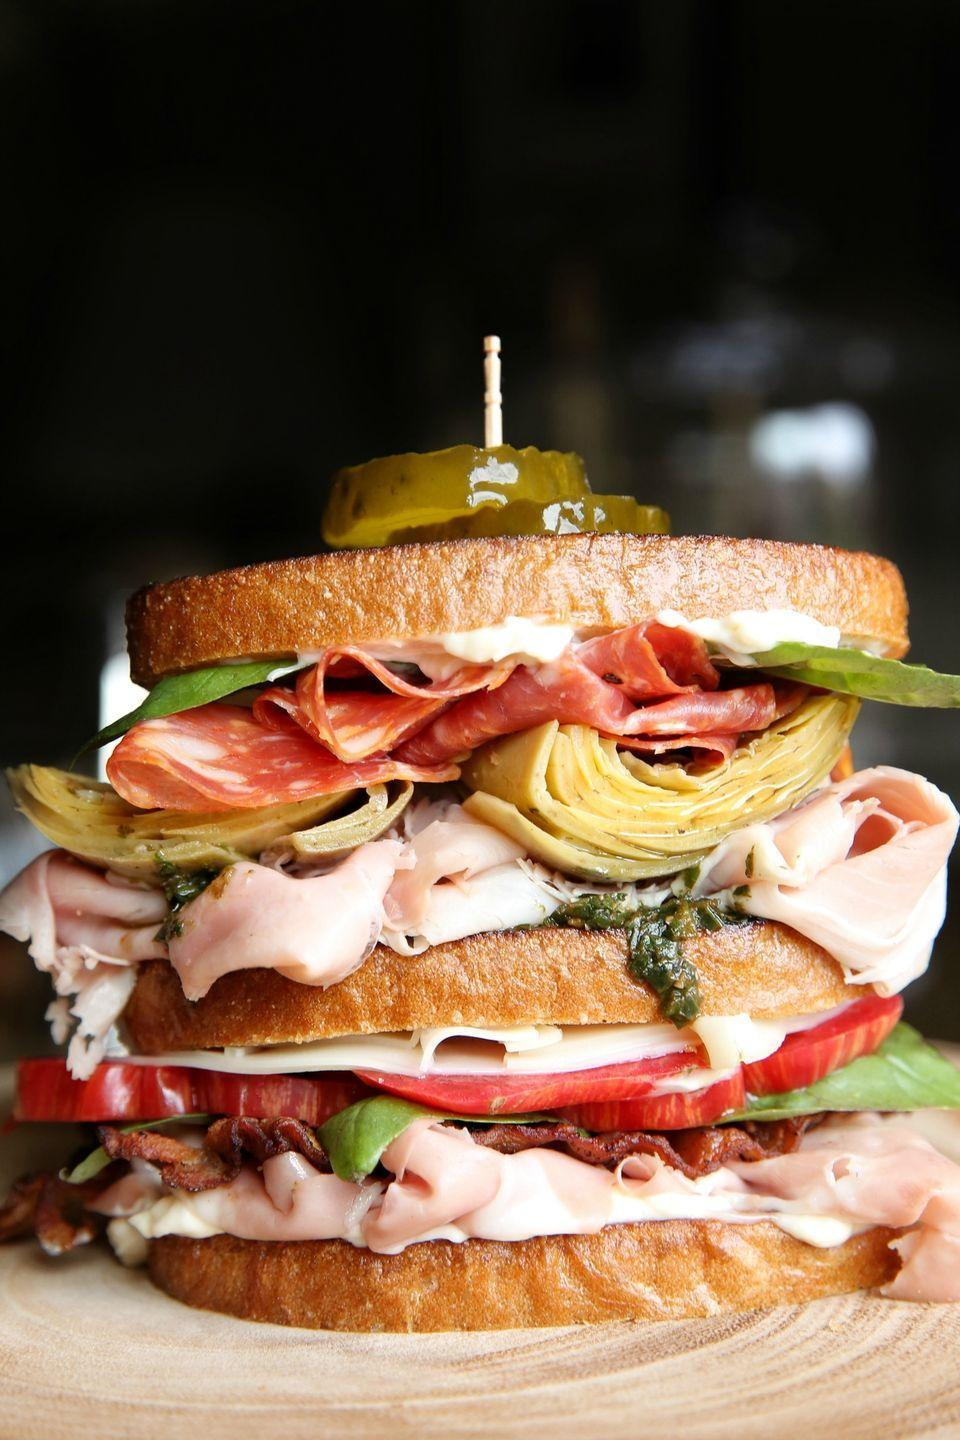 """<p>Stack up all the components of an antipasto platter for a sandwich that's <em>molto bene</em>.</p><p>Get the recipe from <a href=""""https://www.delish.com/cooking/recipe-ideas/recipes/a48559/italian-club-recipe/"""" rel=""""nofollow noopener"""" target=""""_blank"""" data-ylk=""""slk:Delish."""" class=""""link rapid-noclick-resp"""">Delish.</a></p>"""